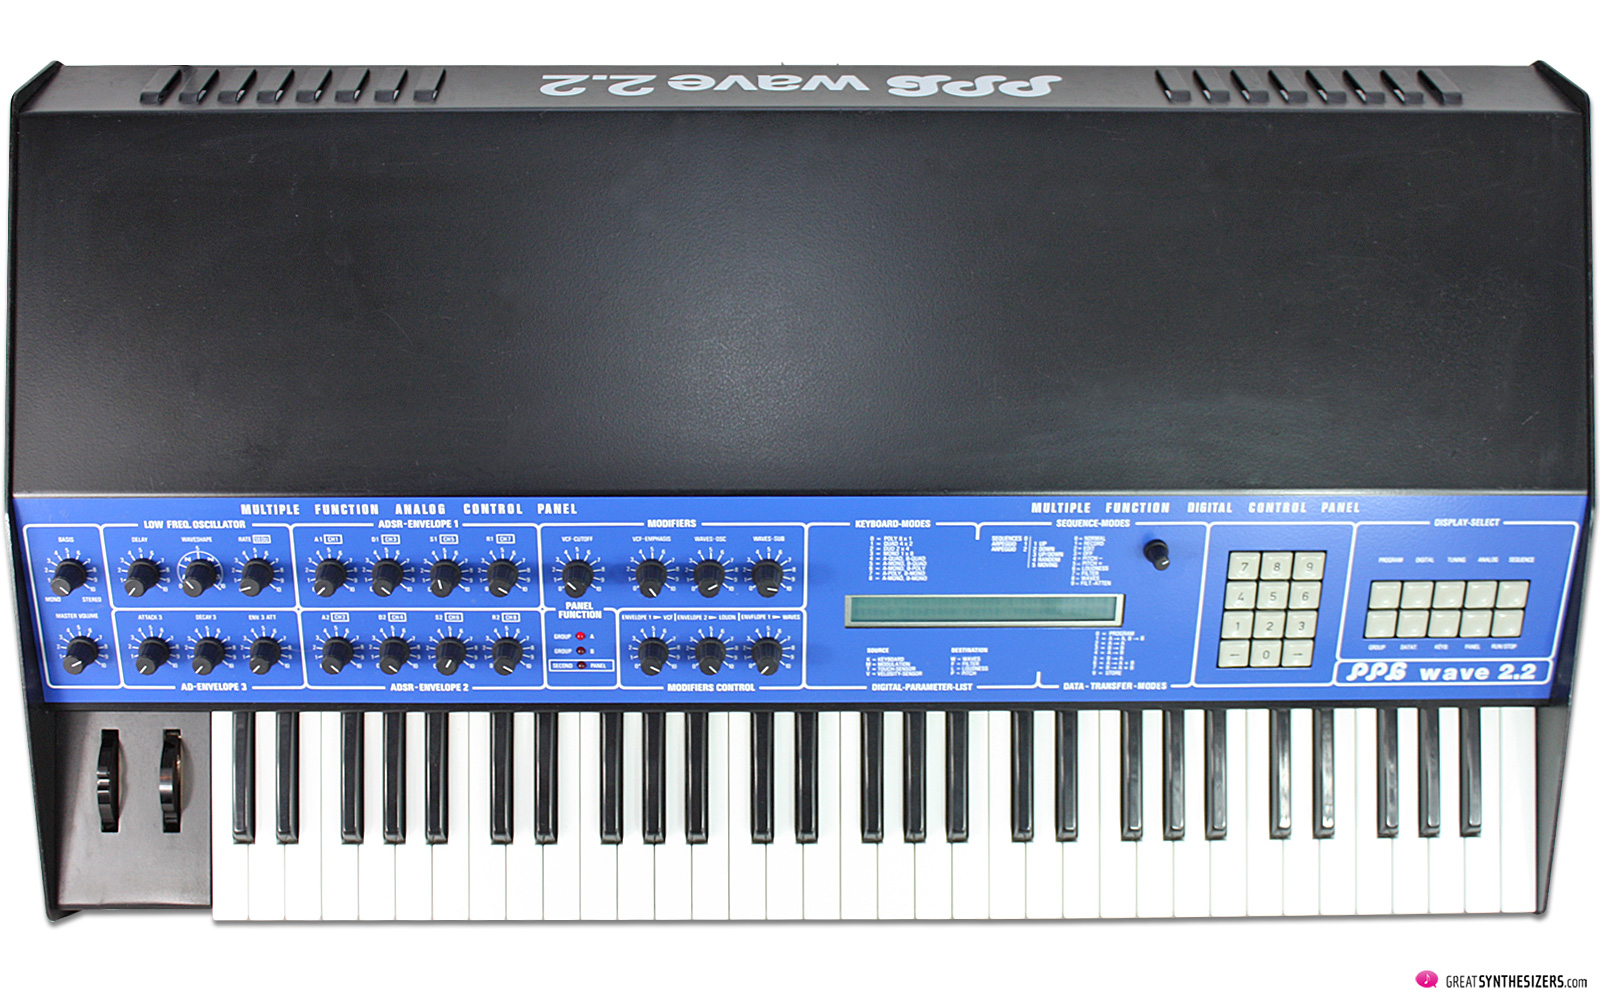 PPG Synthesizer - PPG Wave 2.2 / Wave 2.3